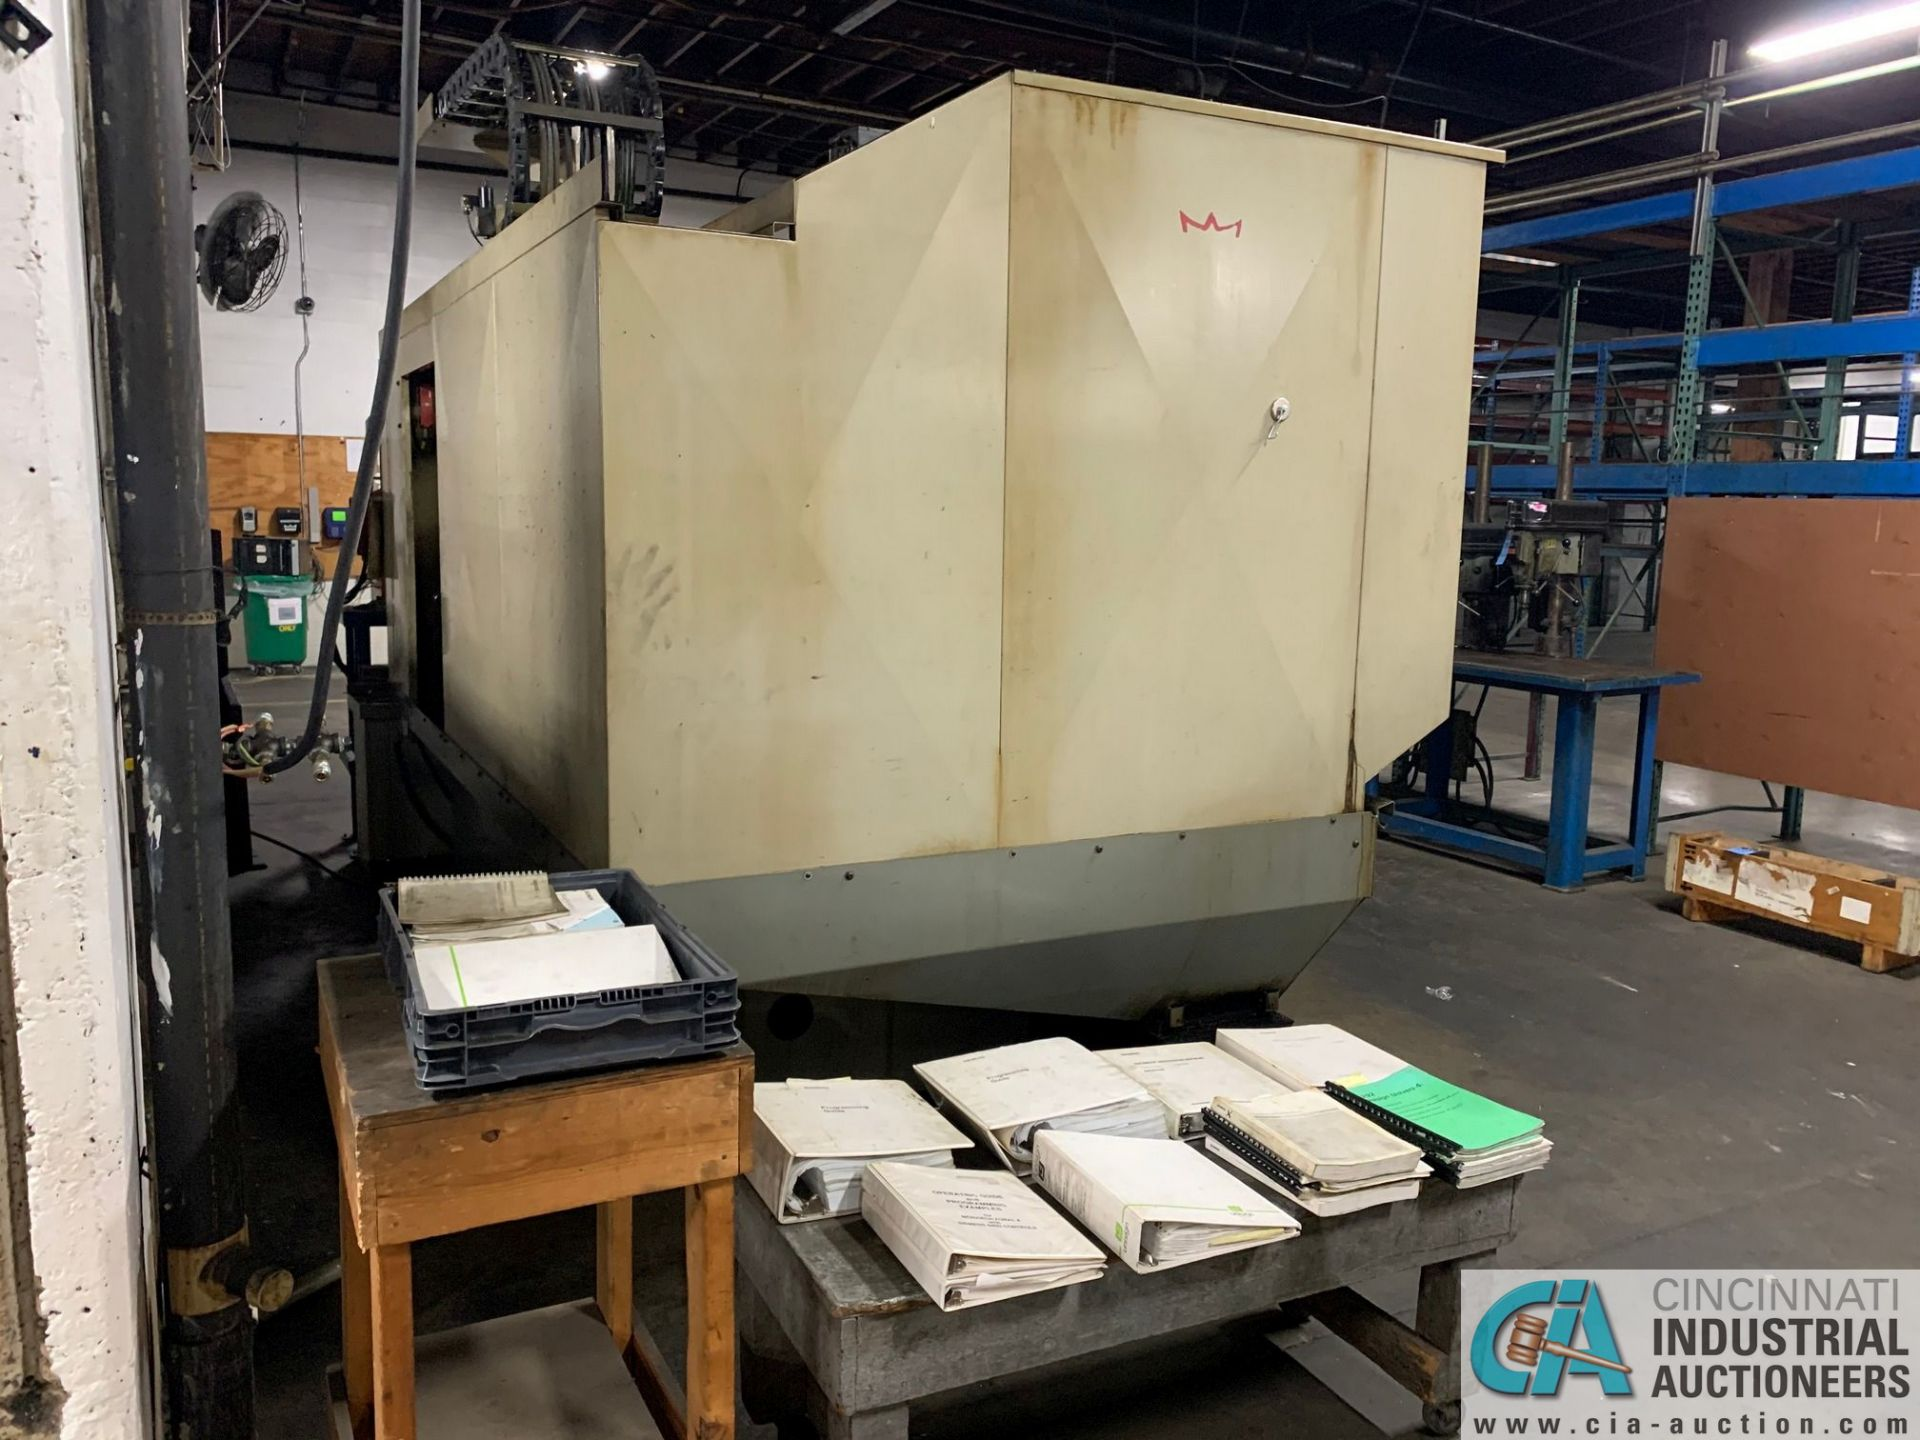 MONARCH UNISIGN TYPE UNIVERS 4 ZONALL 4 CNC VERTICAL MACHINING CENTER; S/N 99Z402, NO. 4292, - Image 9 of 11